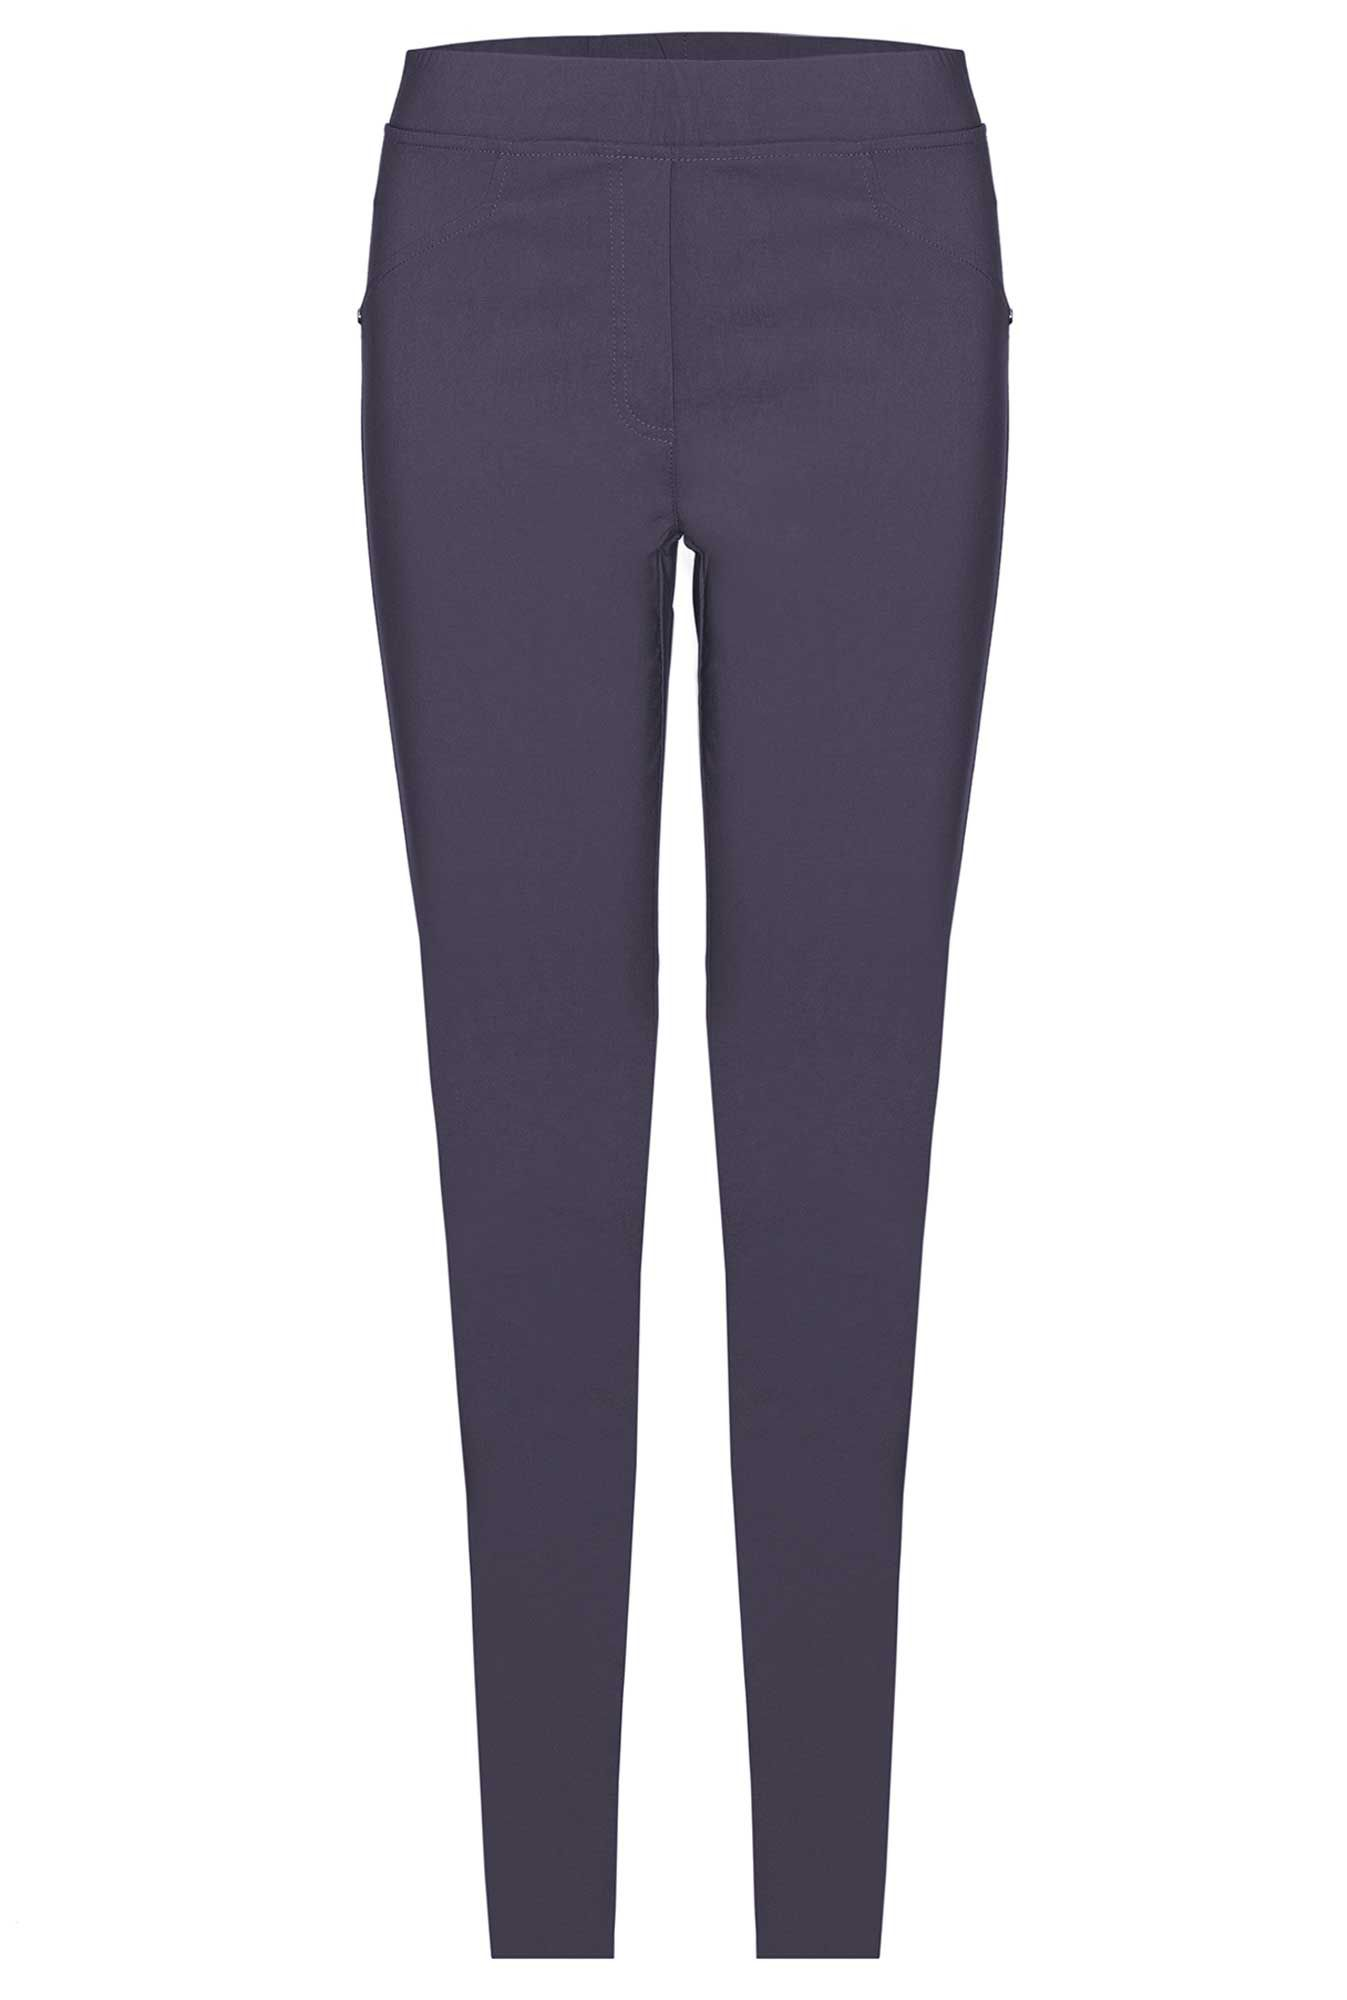 James Lakeland Plain Stretch Trousers, Grey